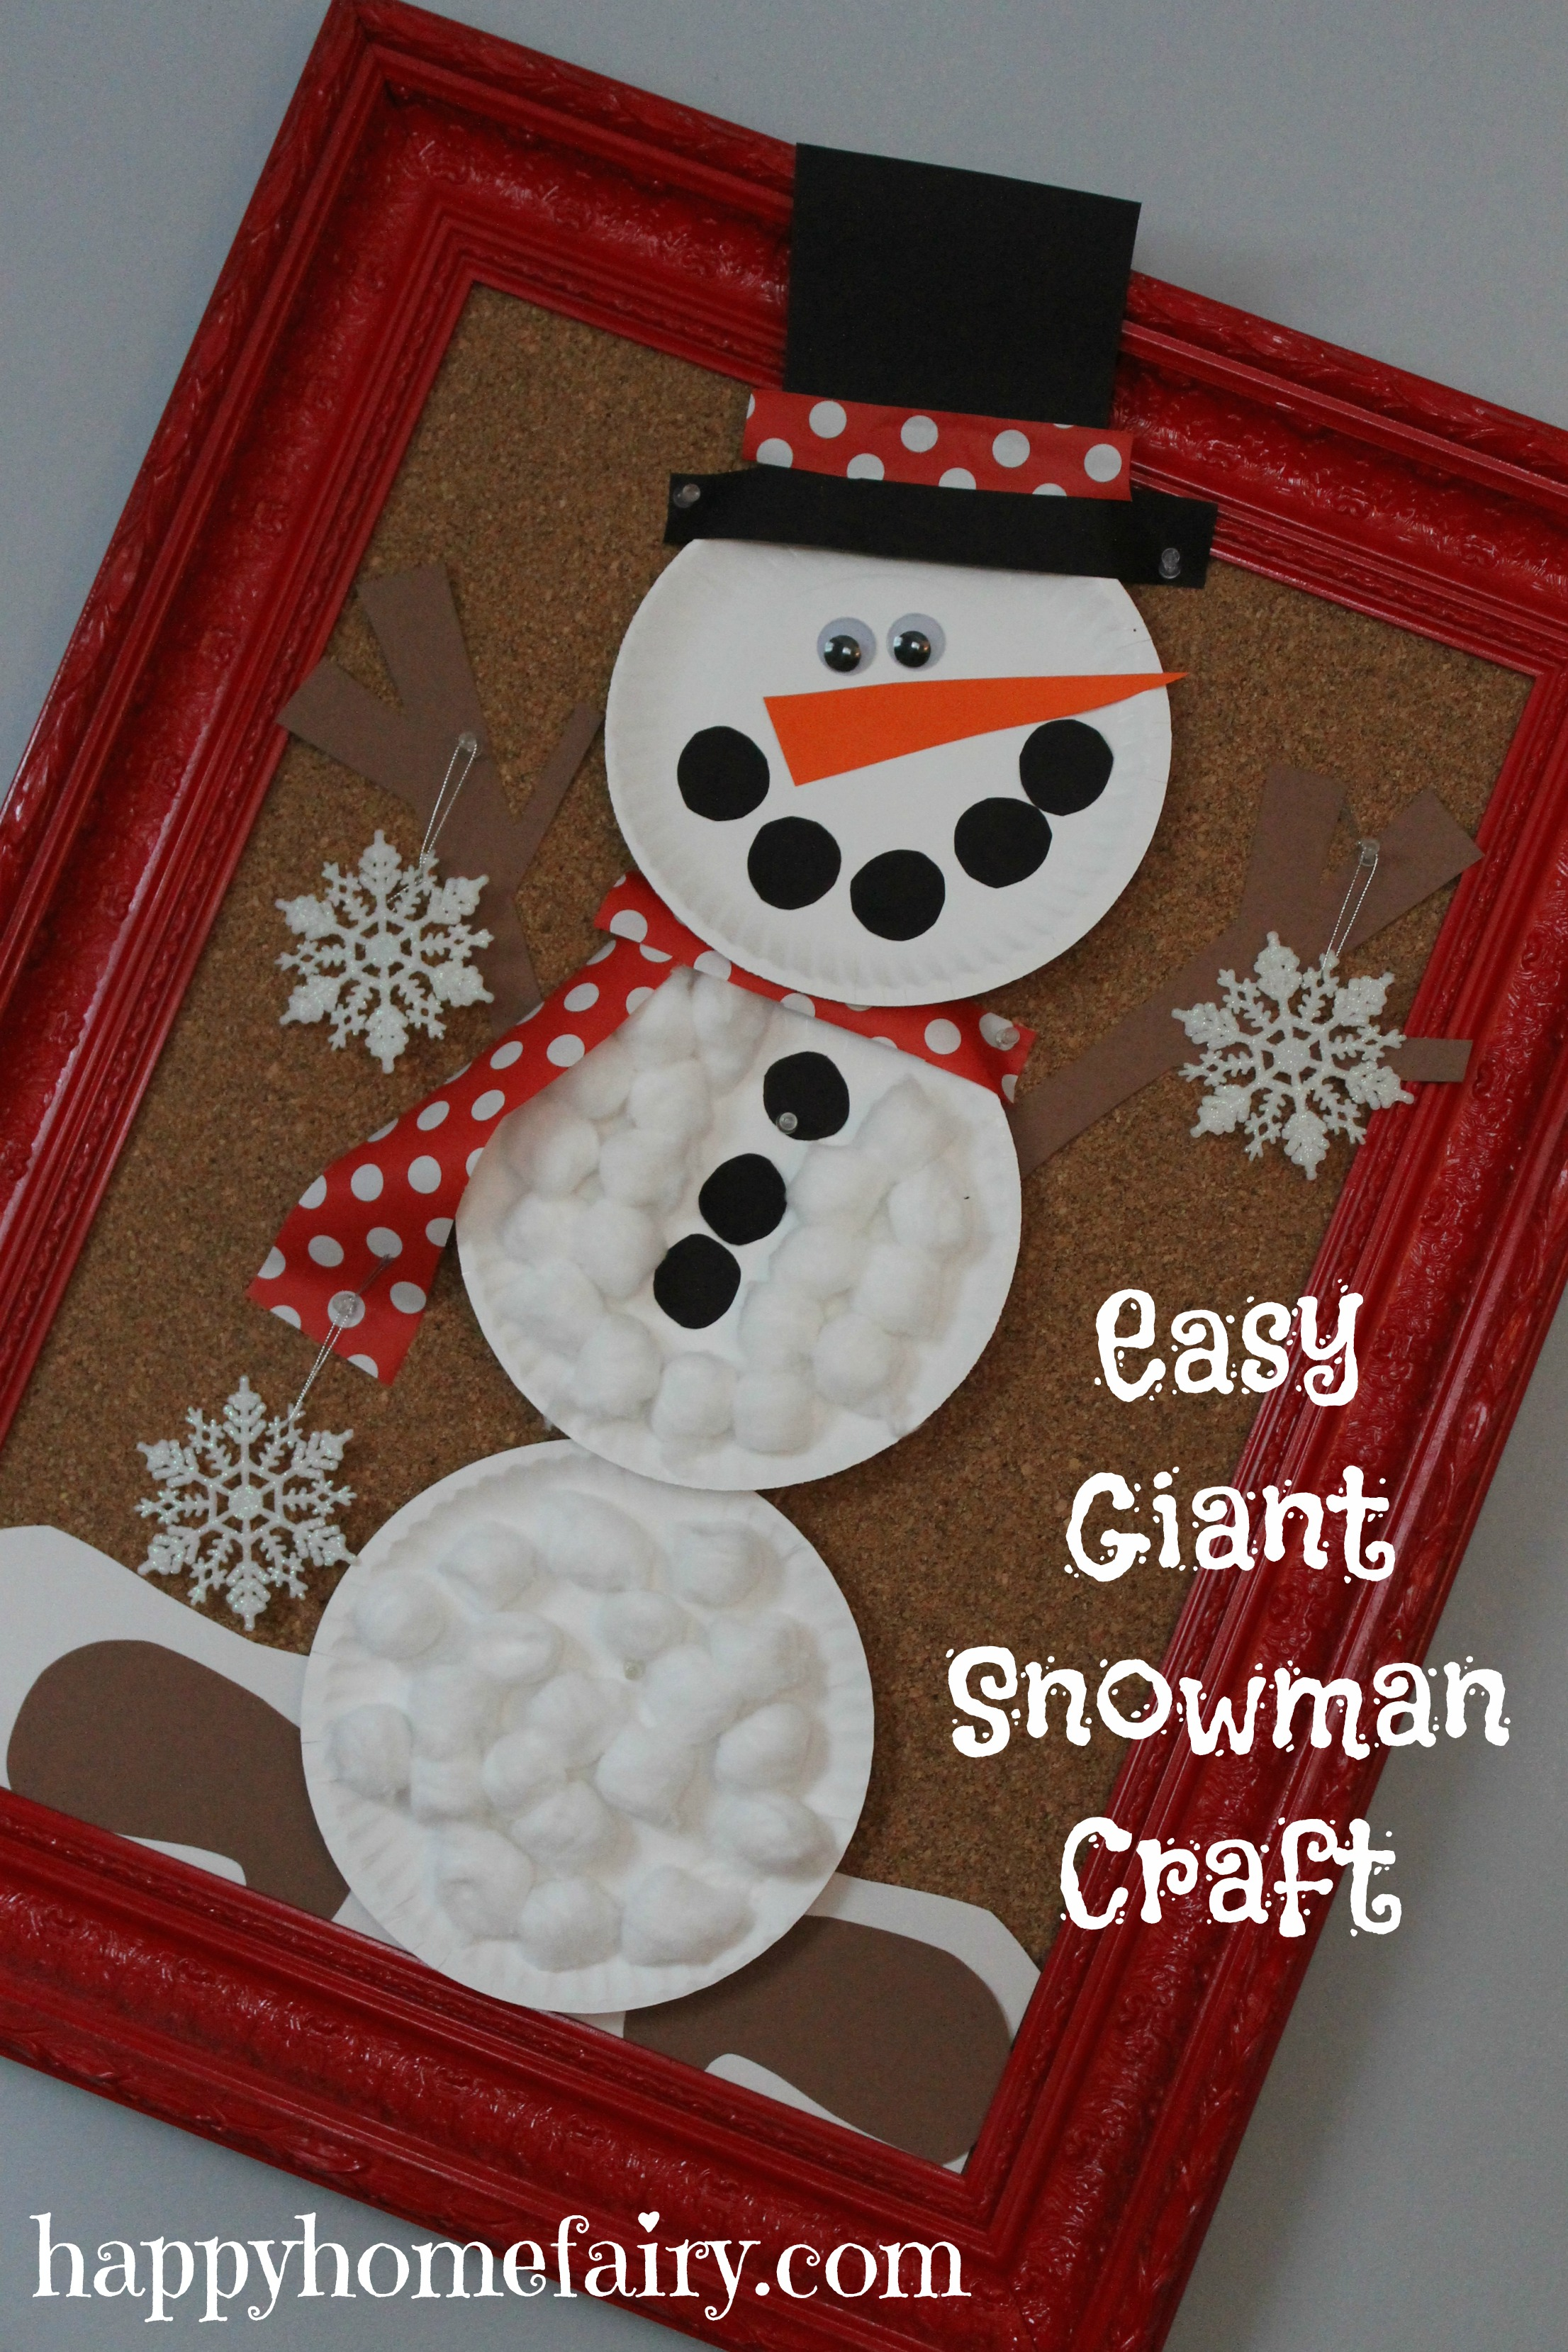 Easy Giant Snowman Craft